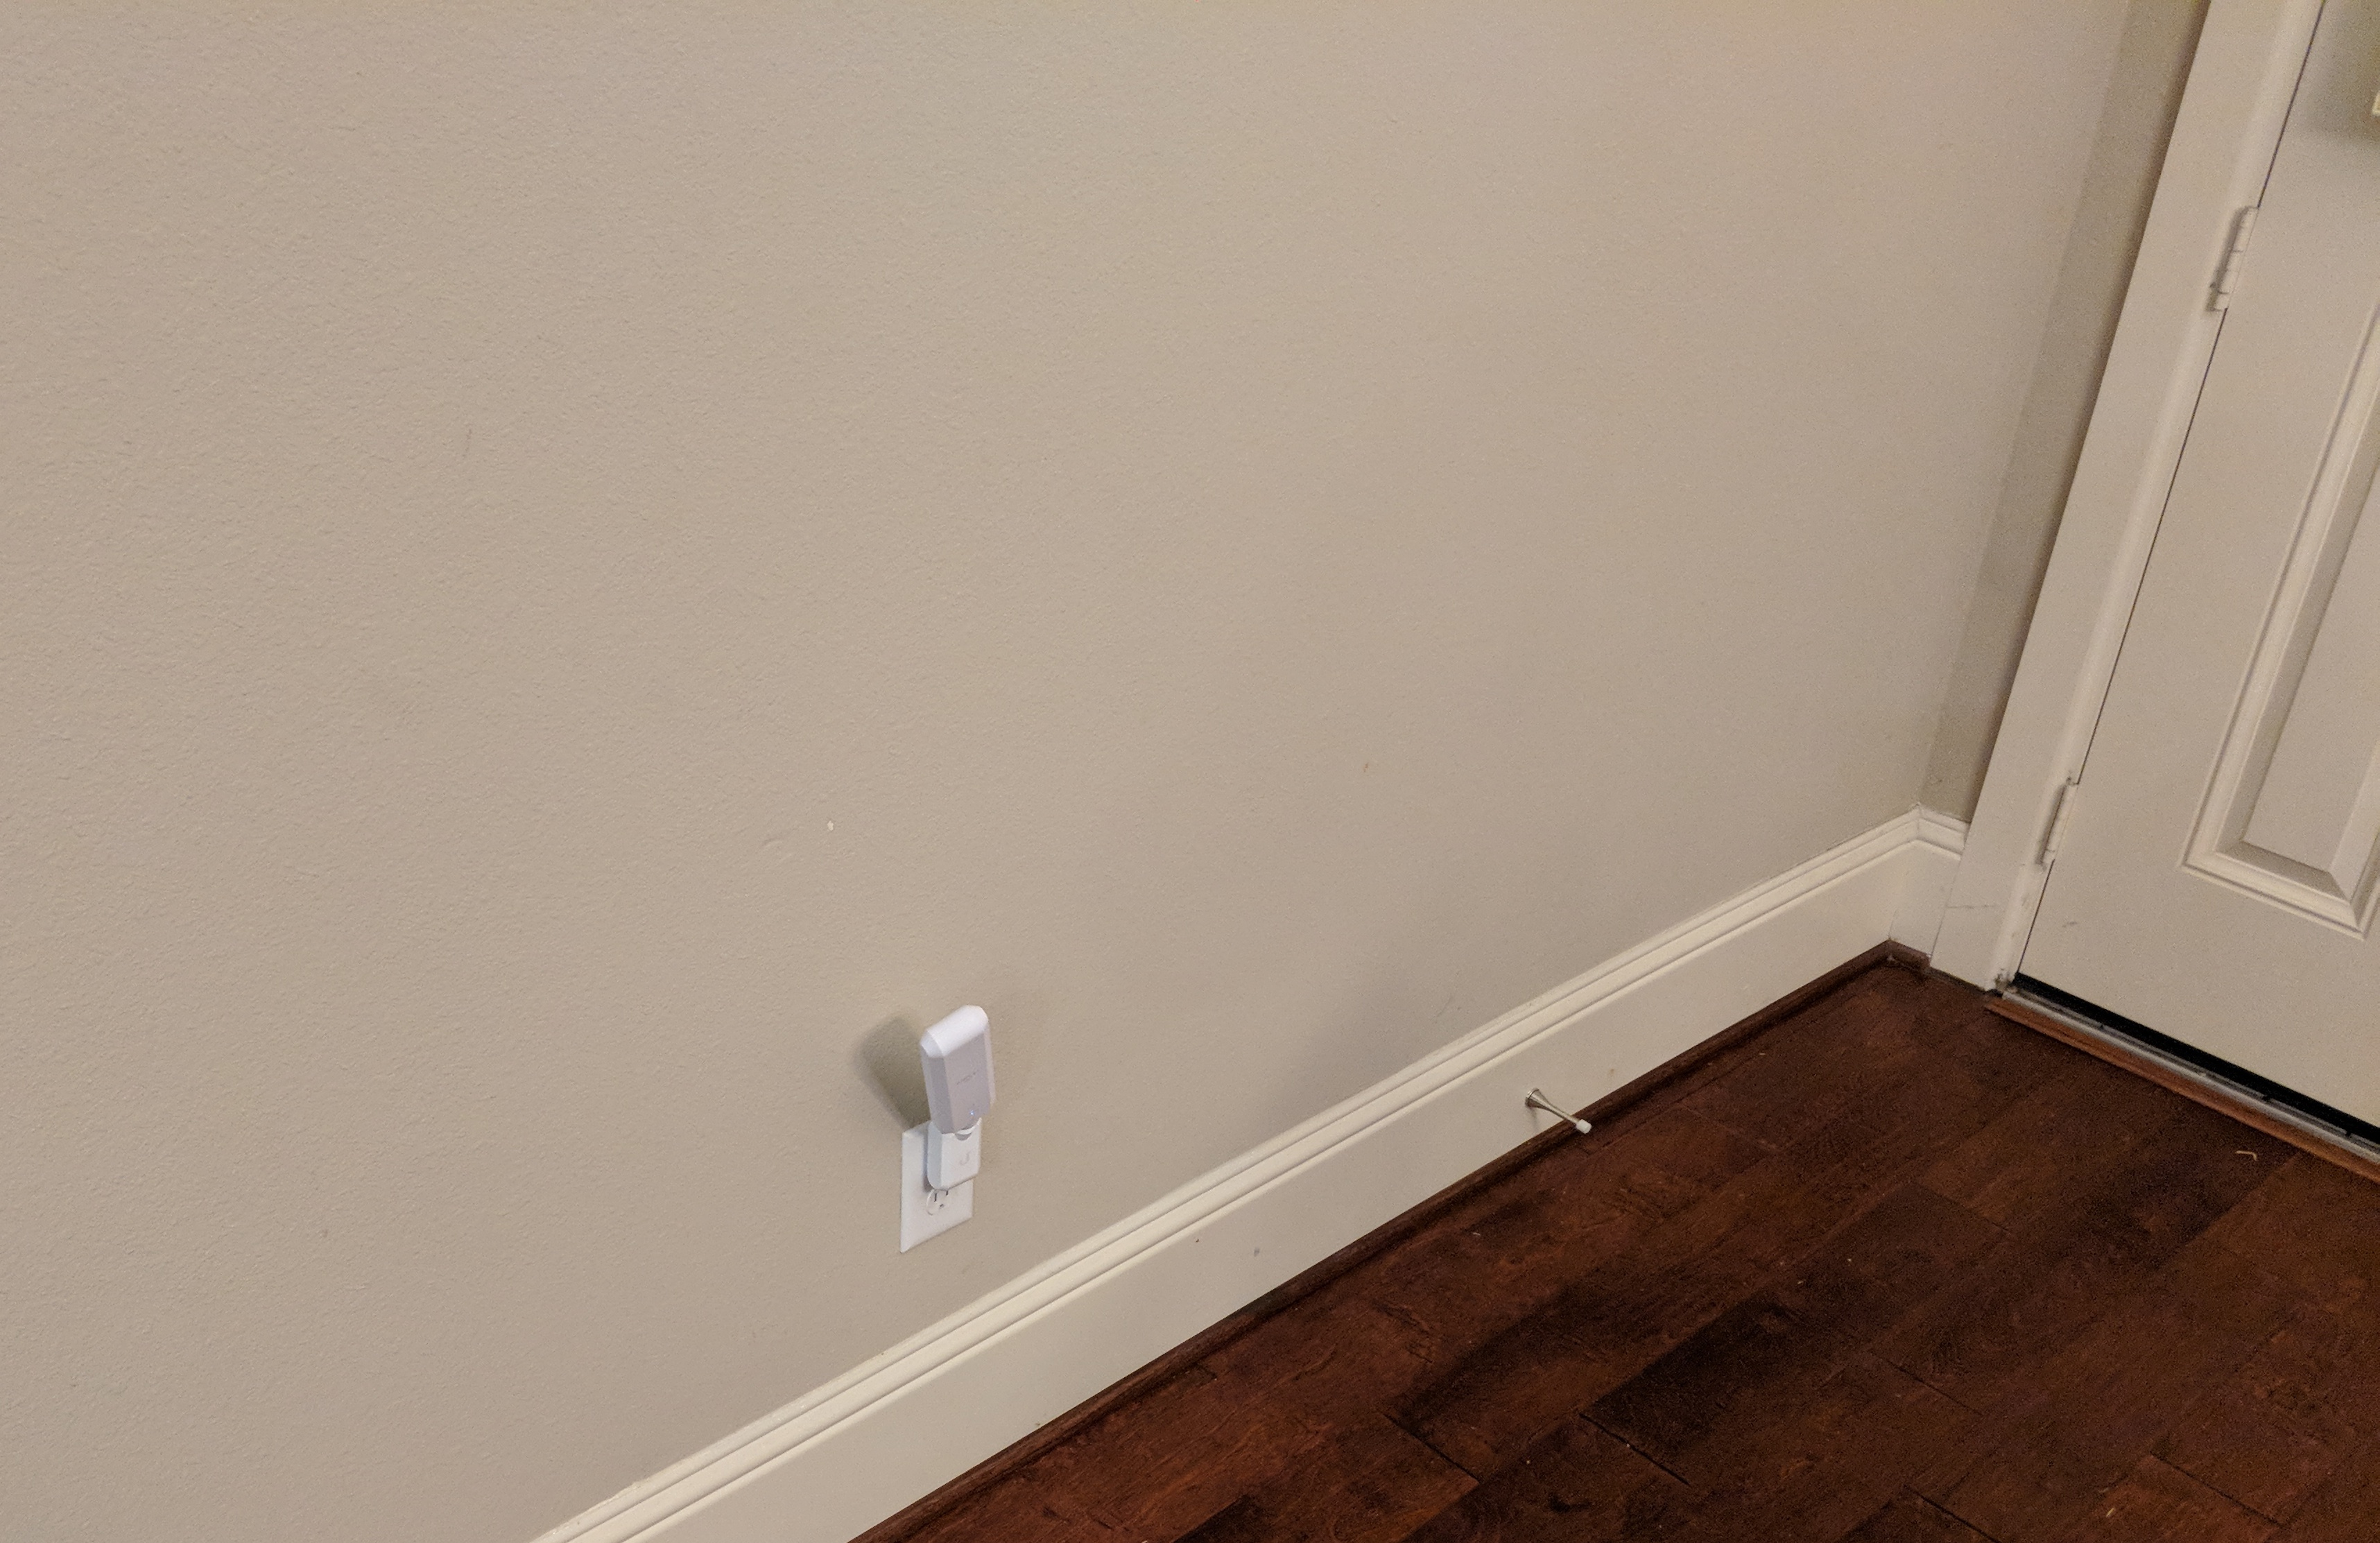 The AmpliFi HD back door antenna